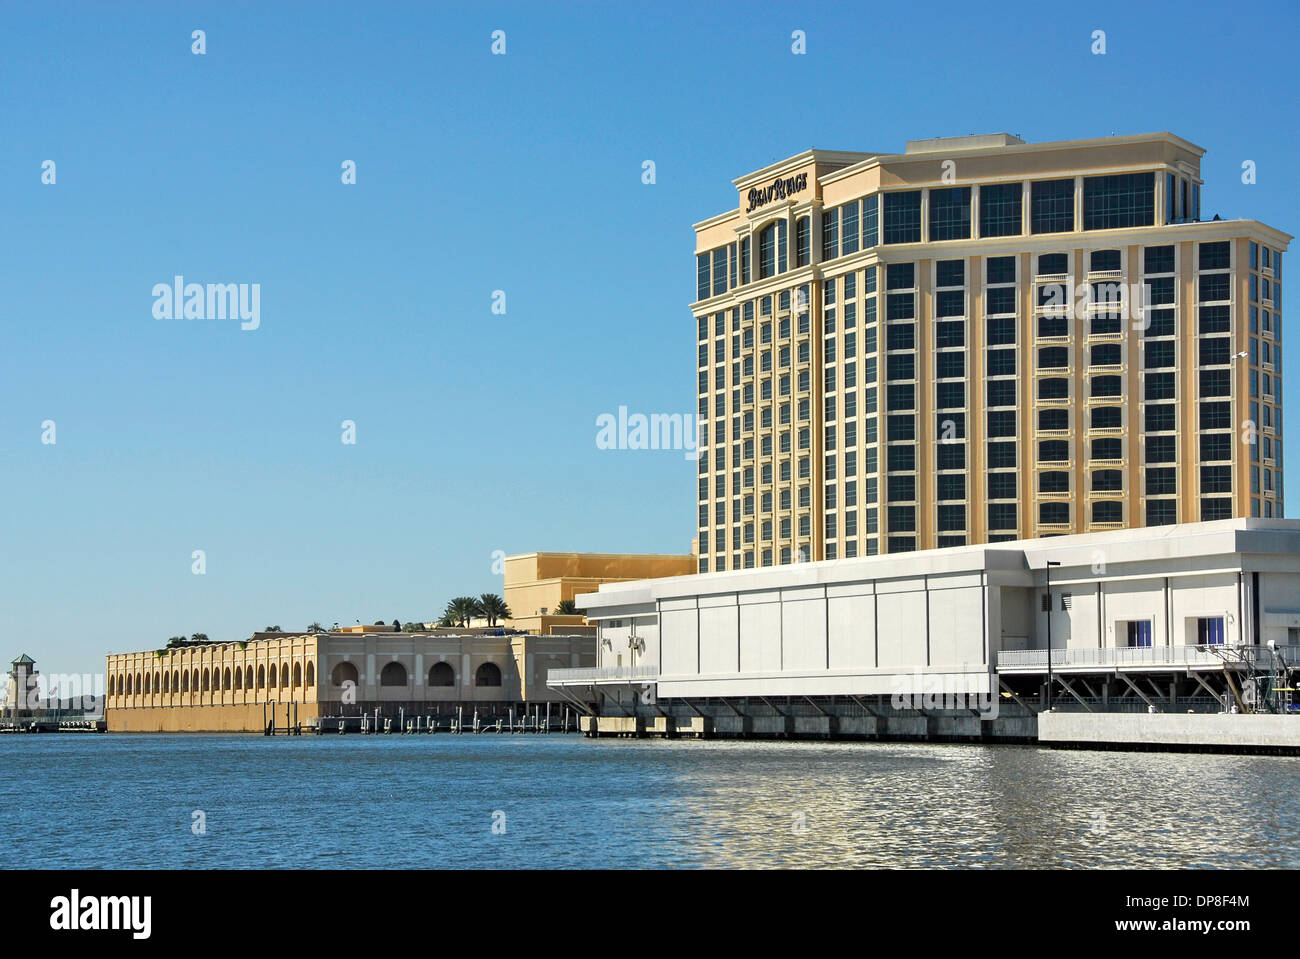 Beau Rivage Hotel And Casino Resort In Biloxi Mississippi Stock